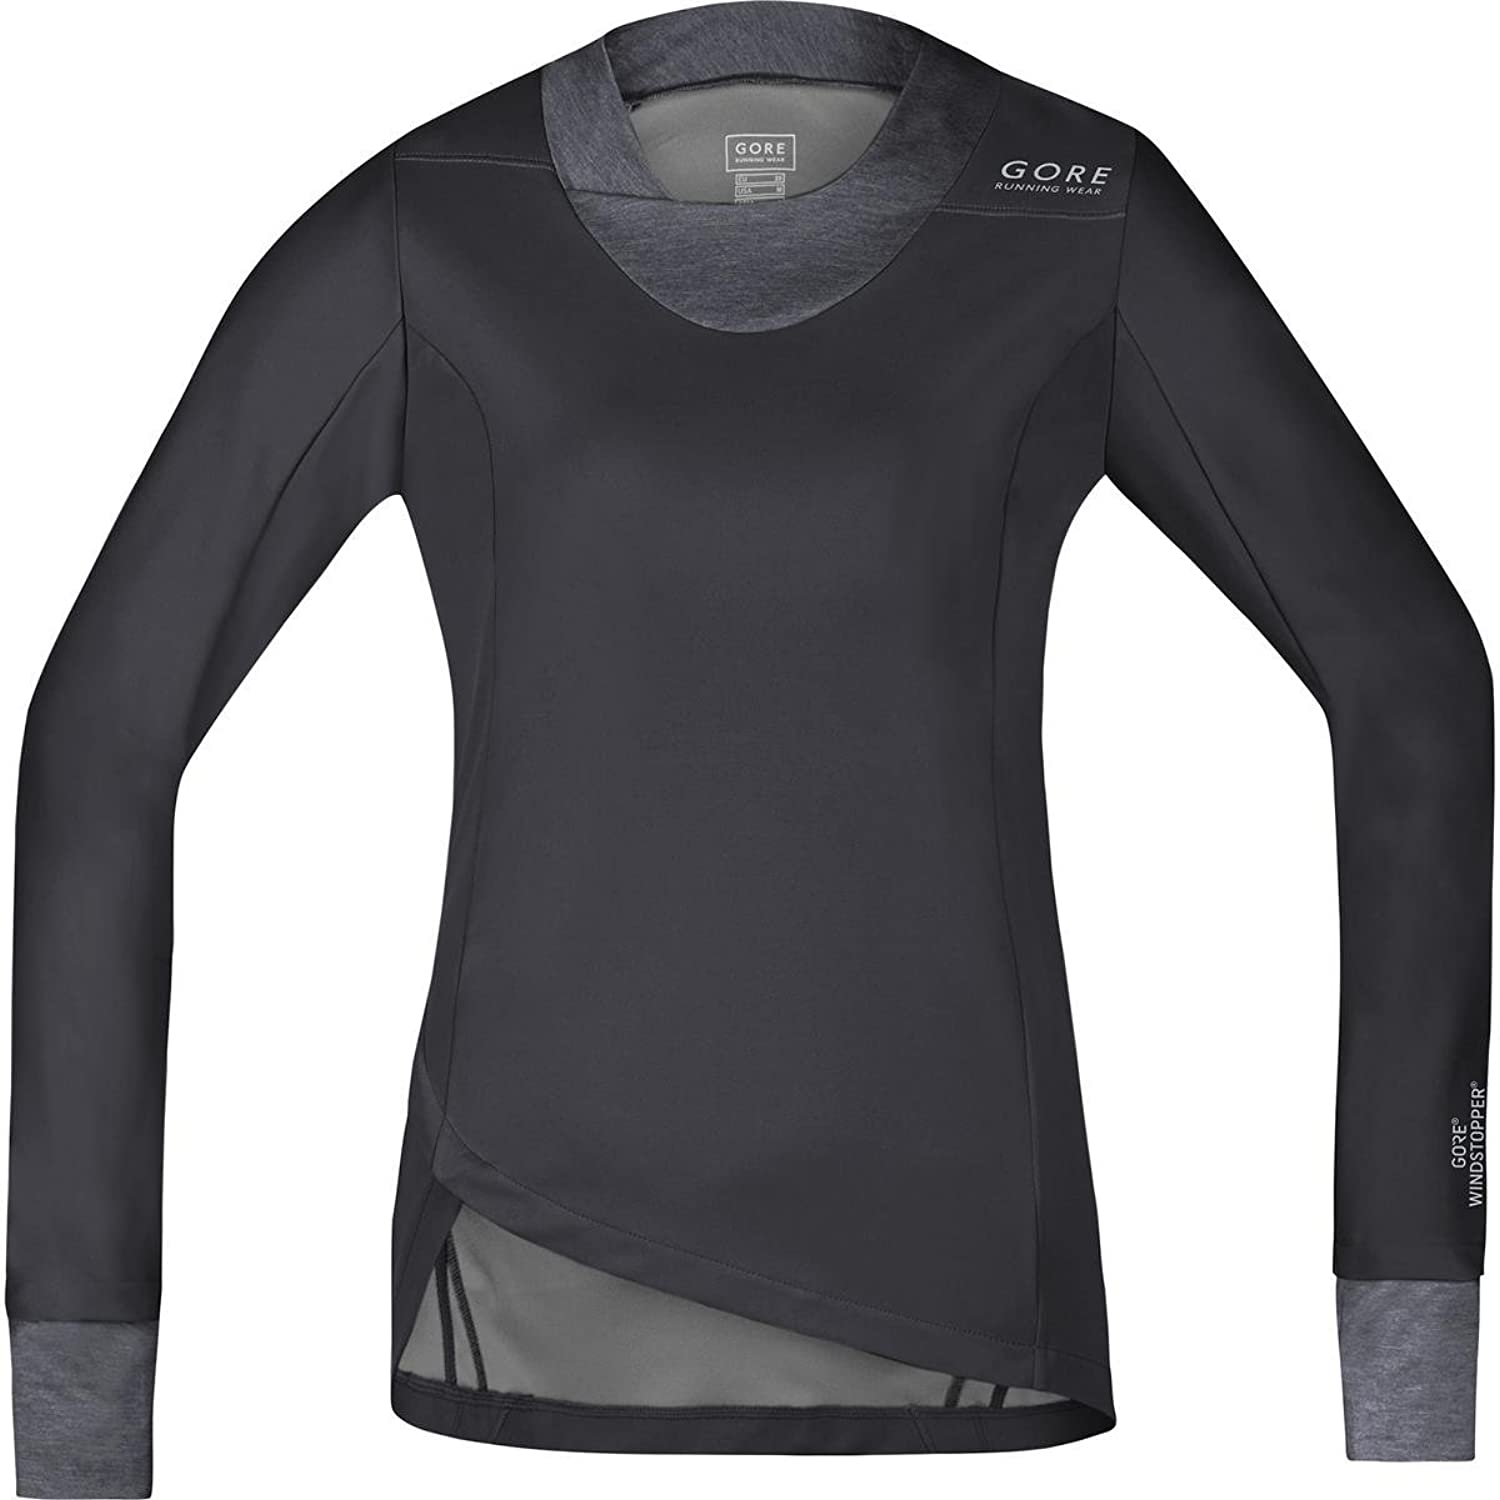 Gore Sunlight Lady Windstopper Soft Shell Long Sleeve Running Top  Small